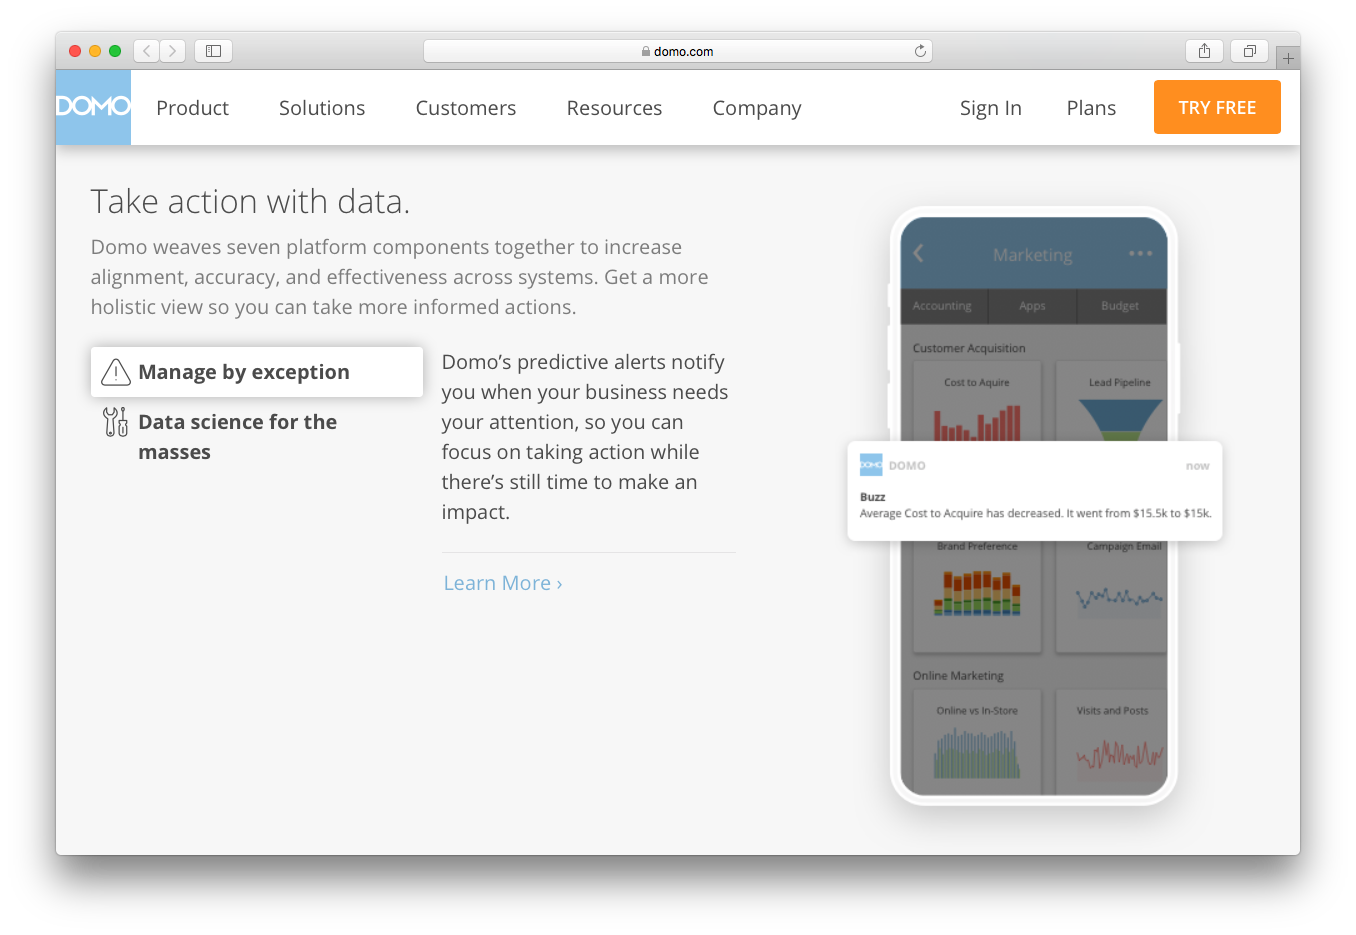 Domo alerts center manage by exception data science for masses